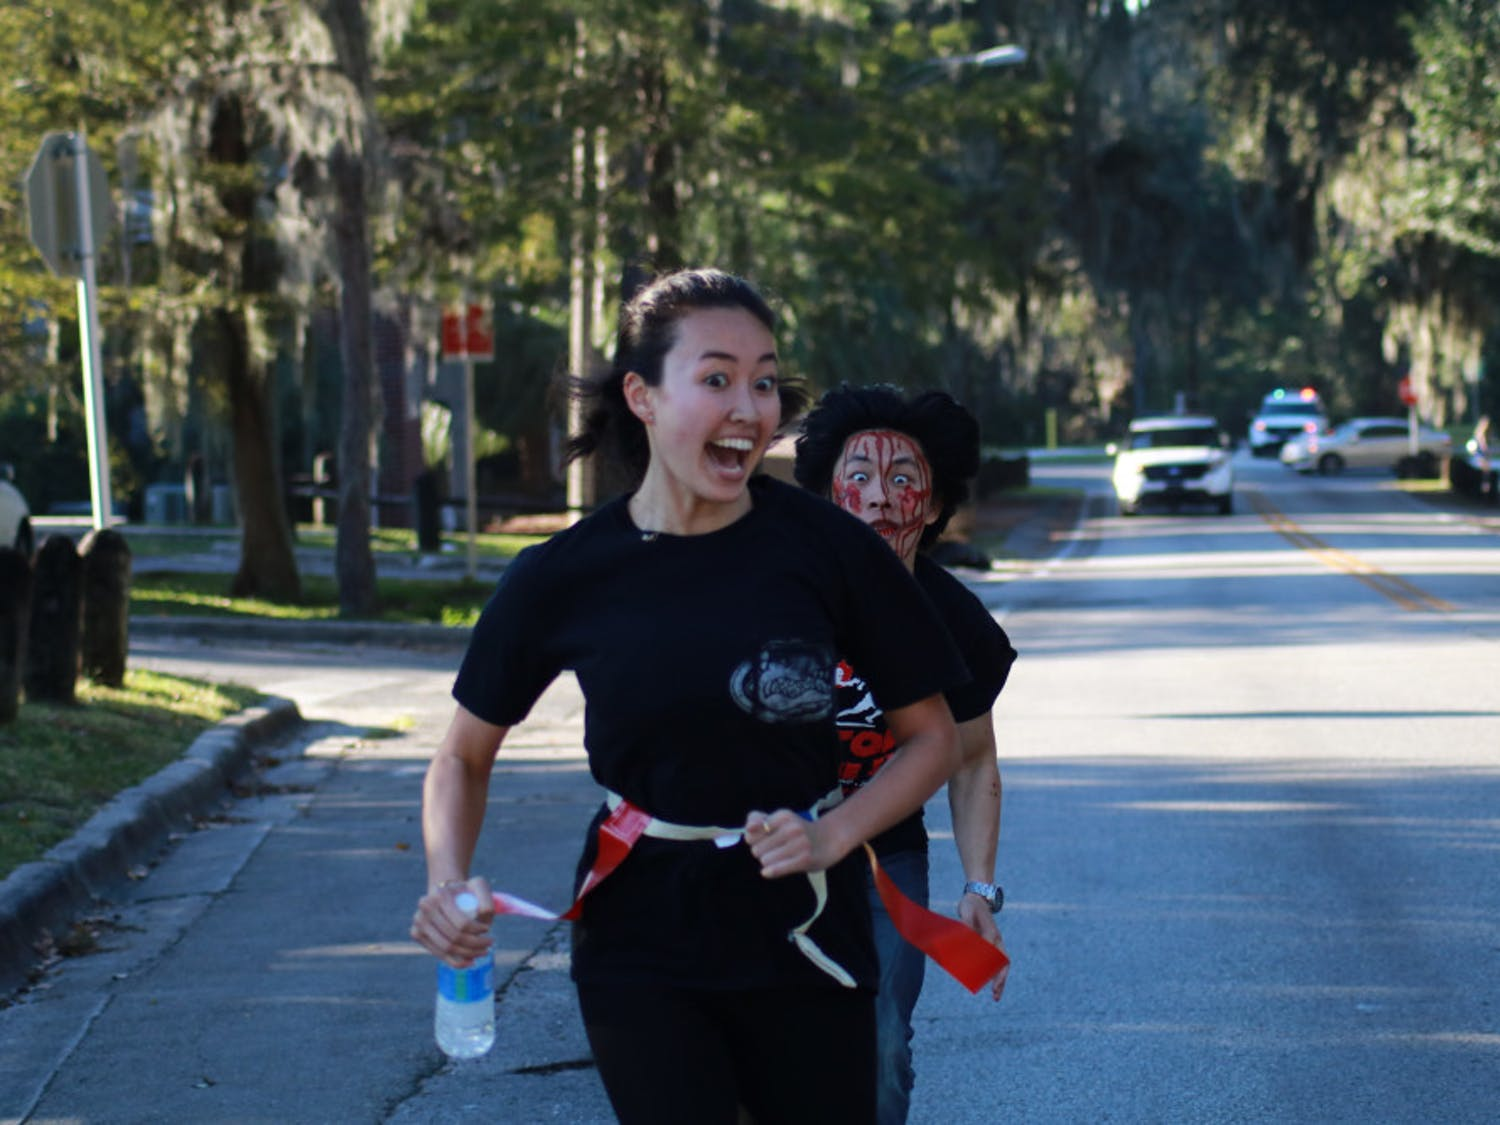 Leeson Chen, a 21-year-old UF computer science sophomore, chases Isabelle Lady, a 20-year-old UF biology junior, as she finishes the last leg of the Gator Zombie 5K. Participants wore flag football belts as they ran while volunteer zombies chased them and tried to pull them off.